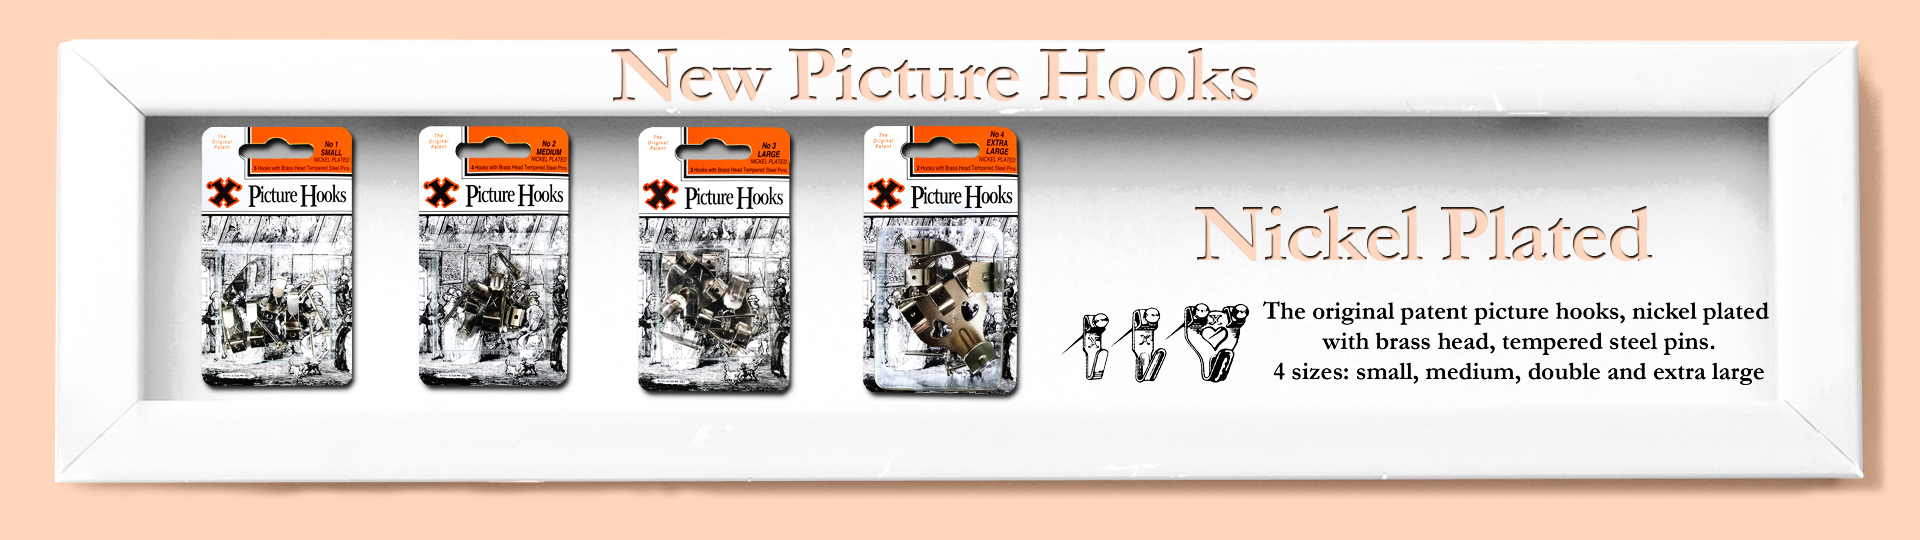 New Picture Hooks